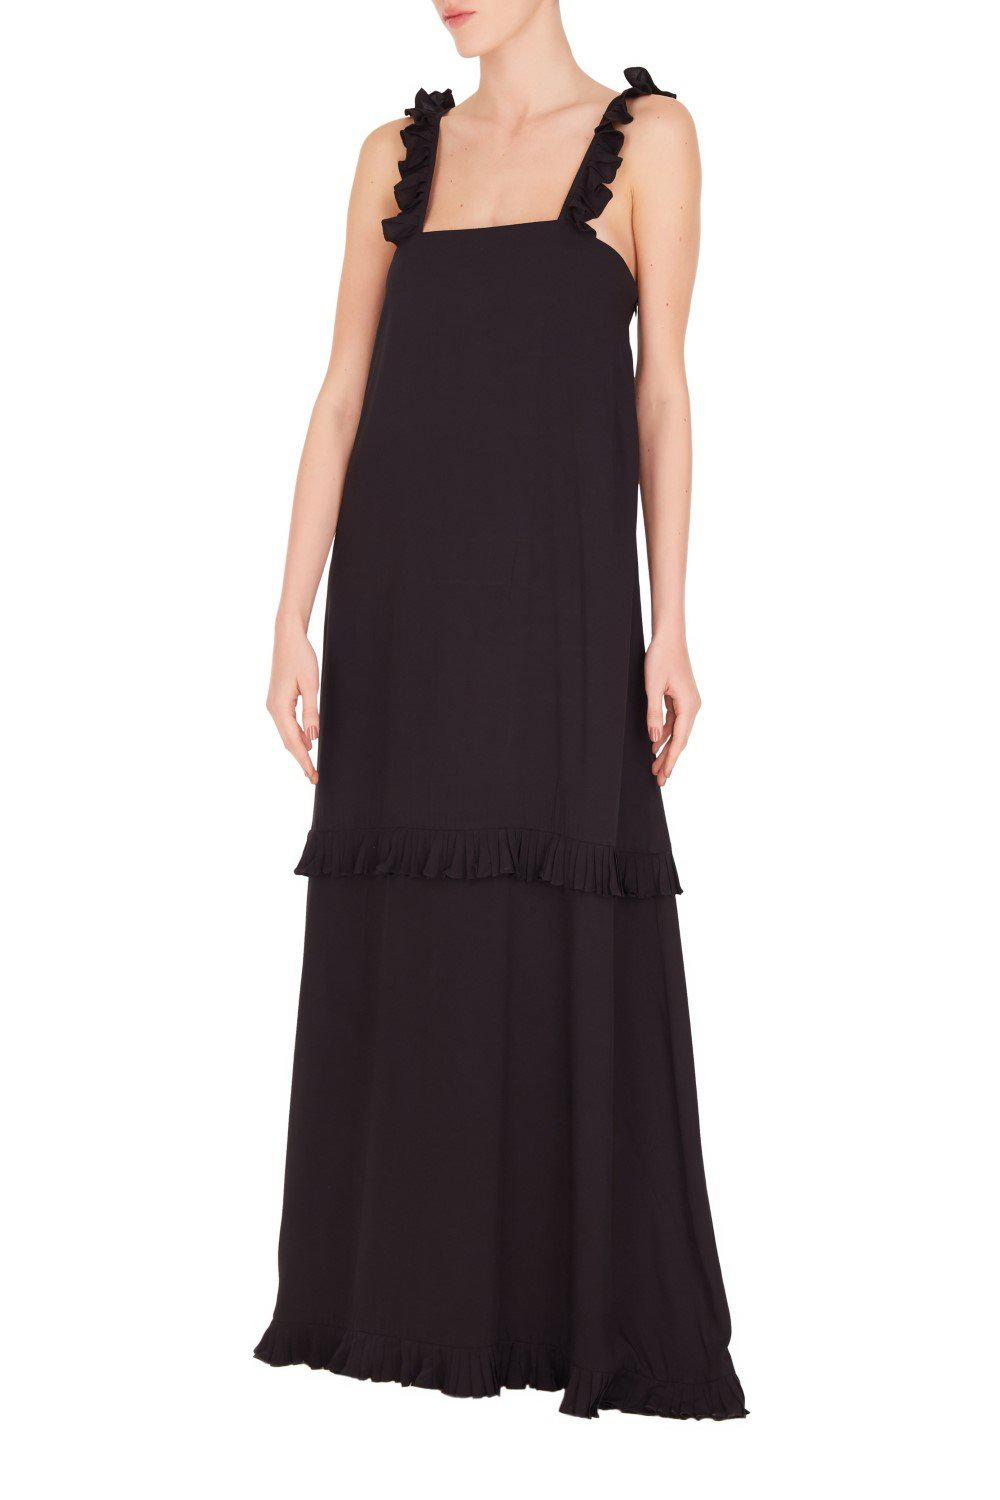 Fruits Exotiques Solid Maxi Long Dress with Frills